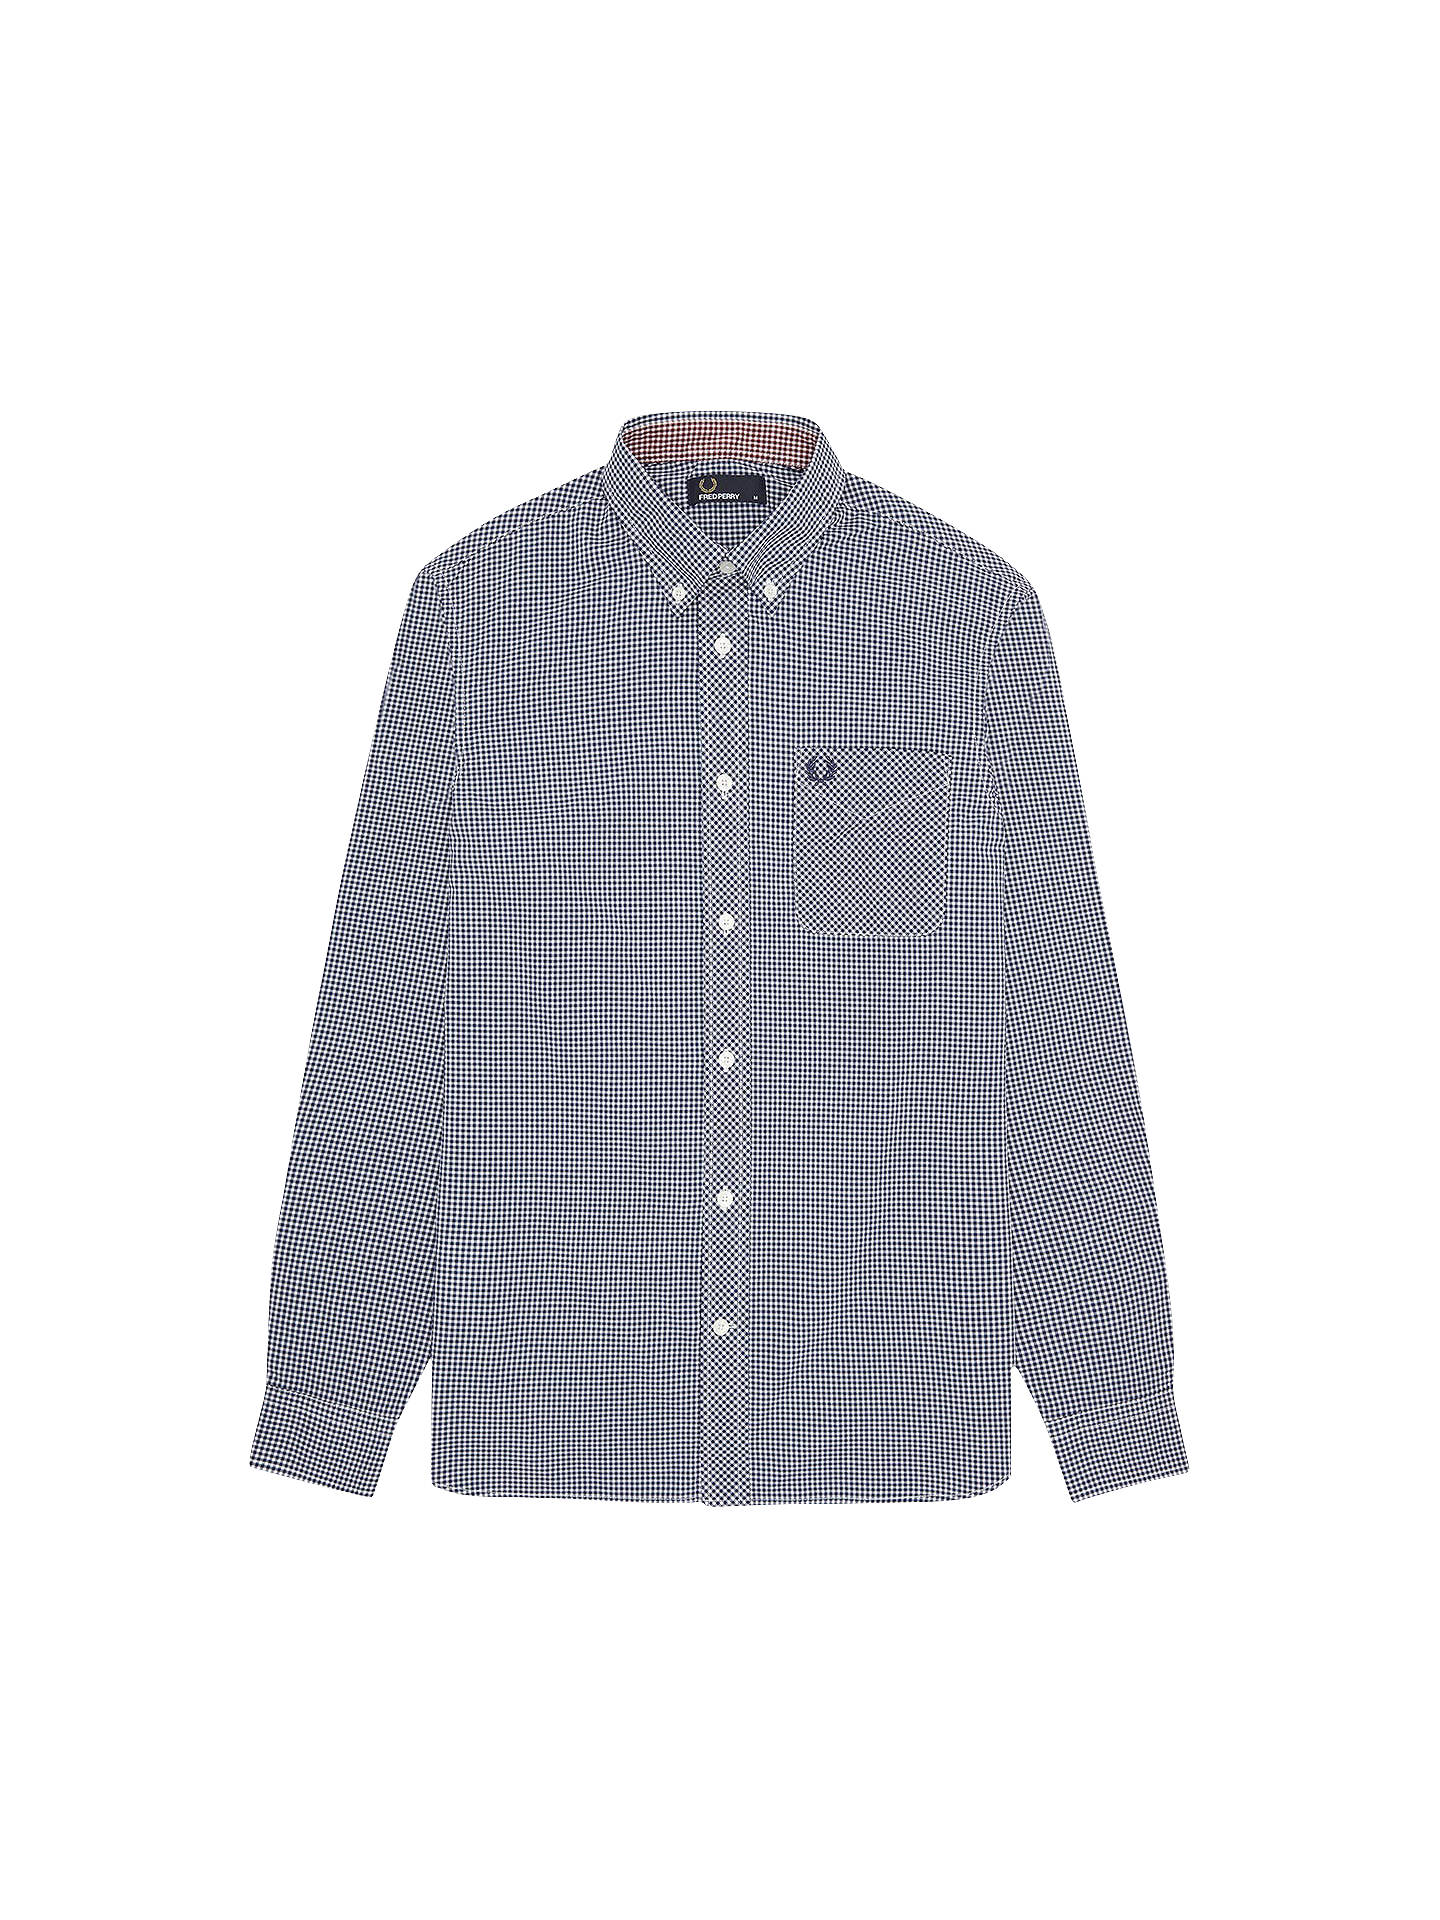 adb72551833 Fred Perry Classic Gingham Shirt at John Lewis   Partners